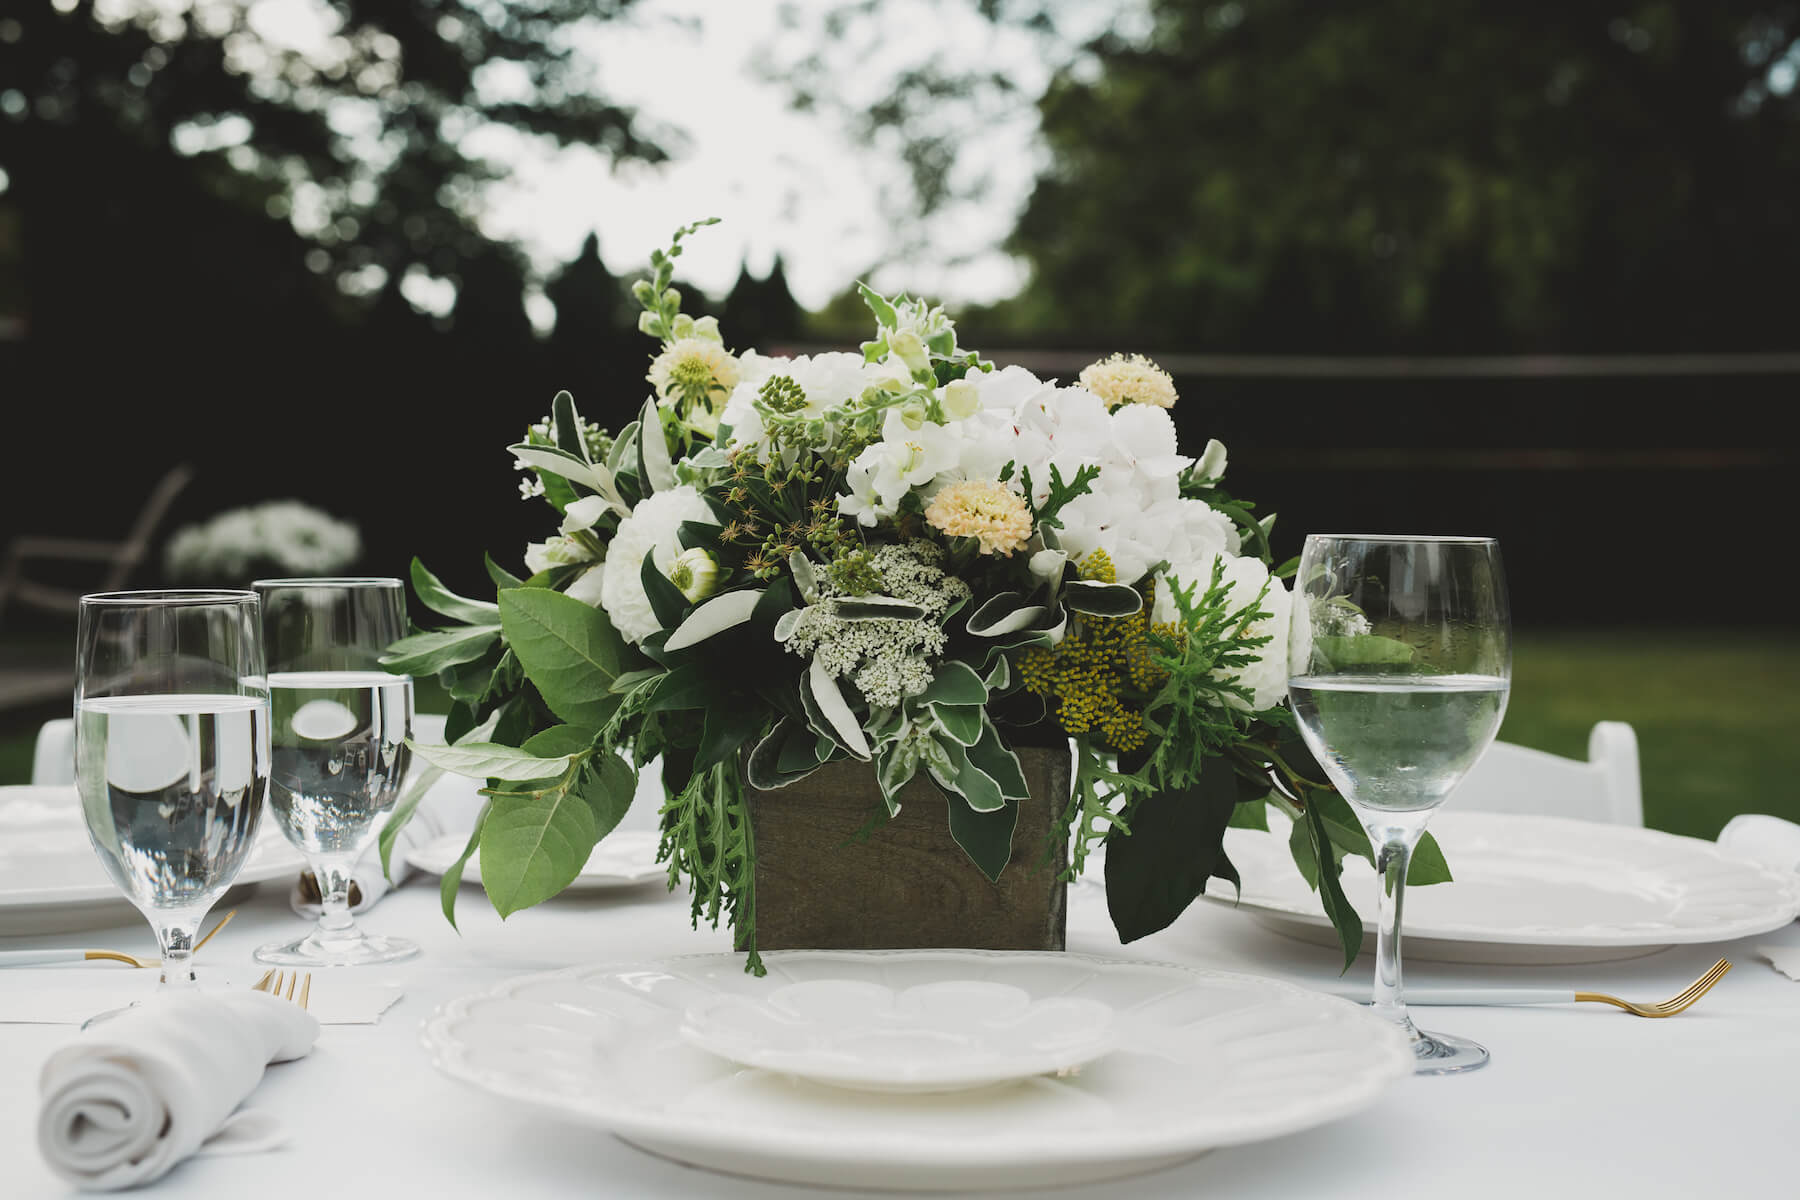 beautiful flower arrangement for garden party table